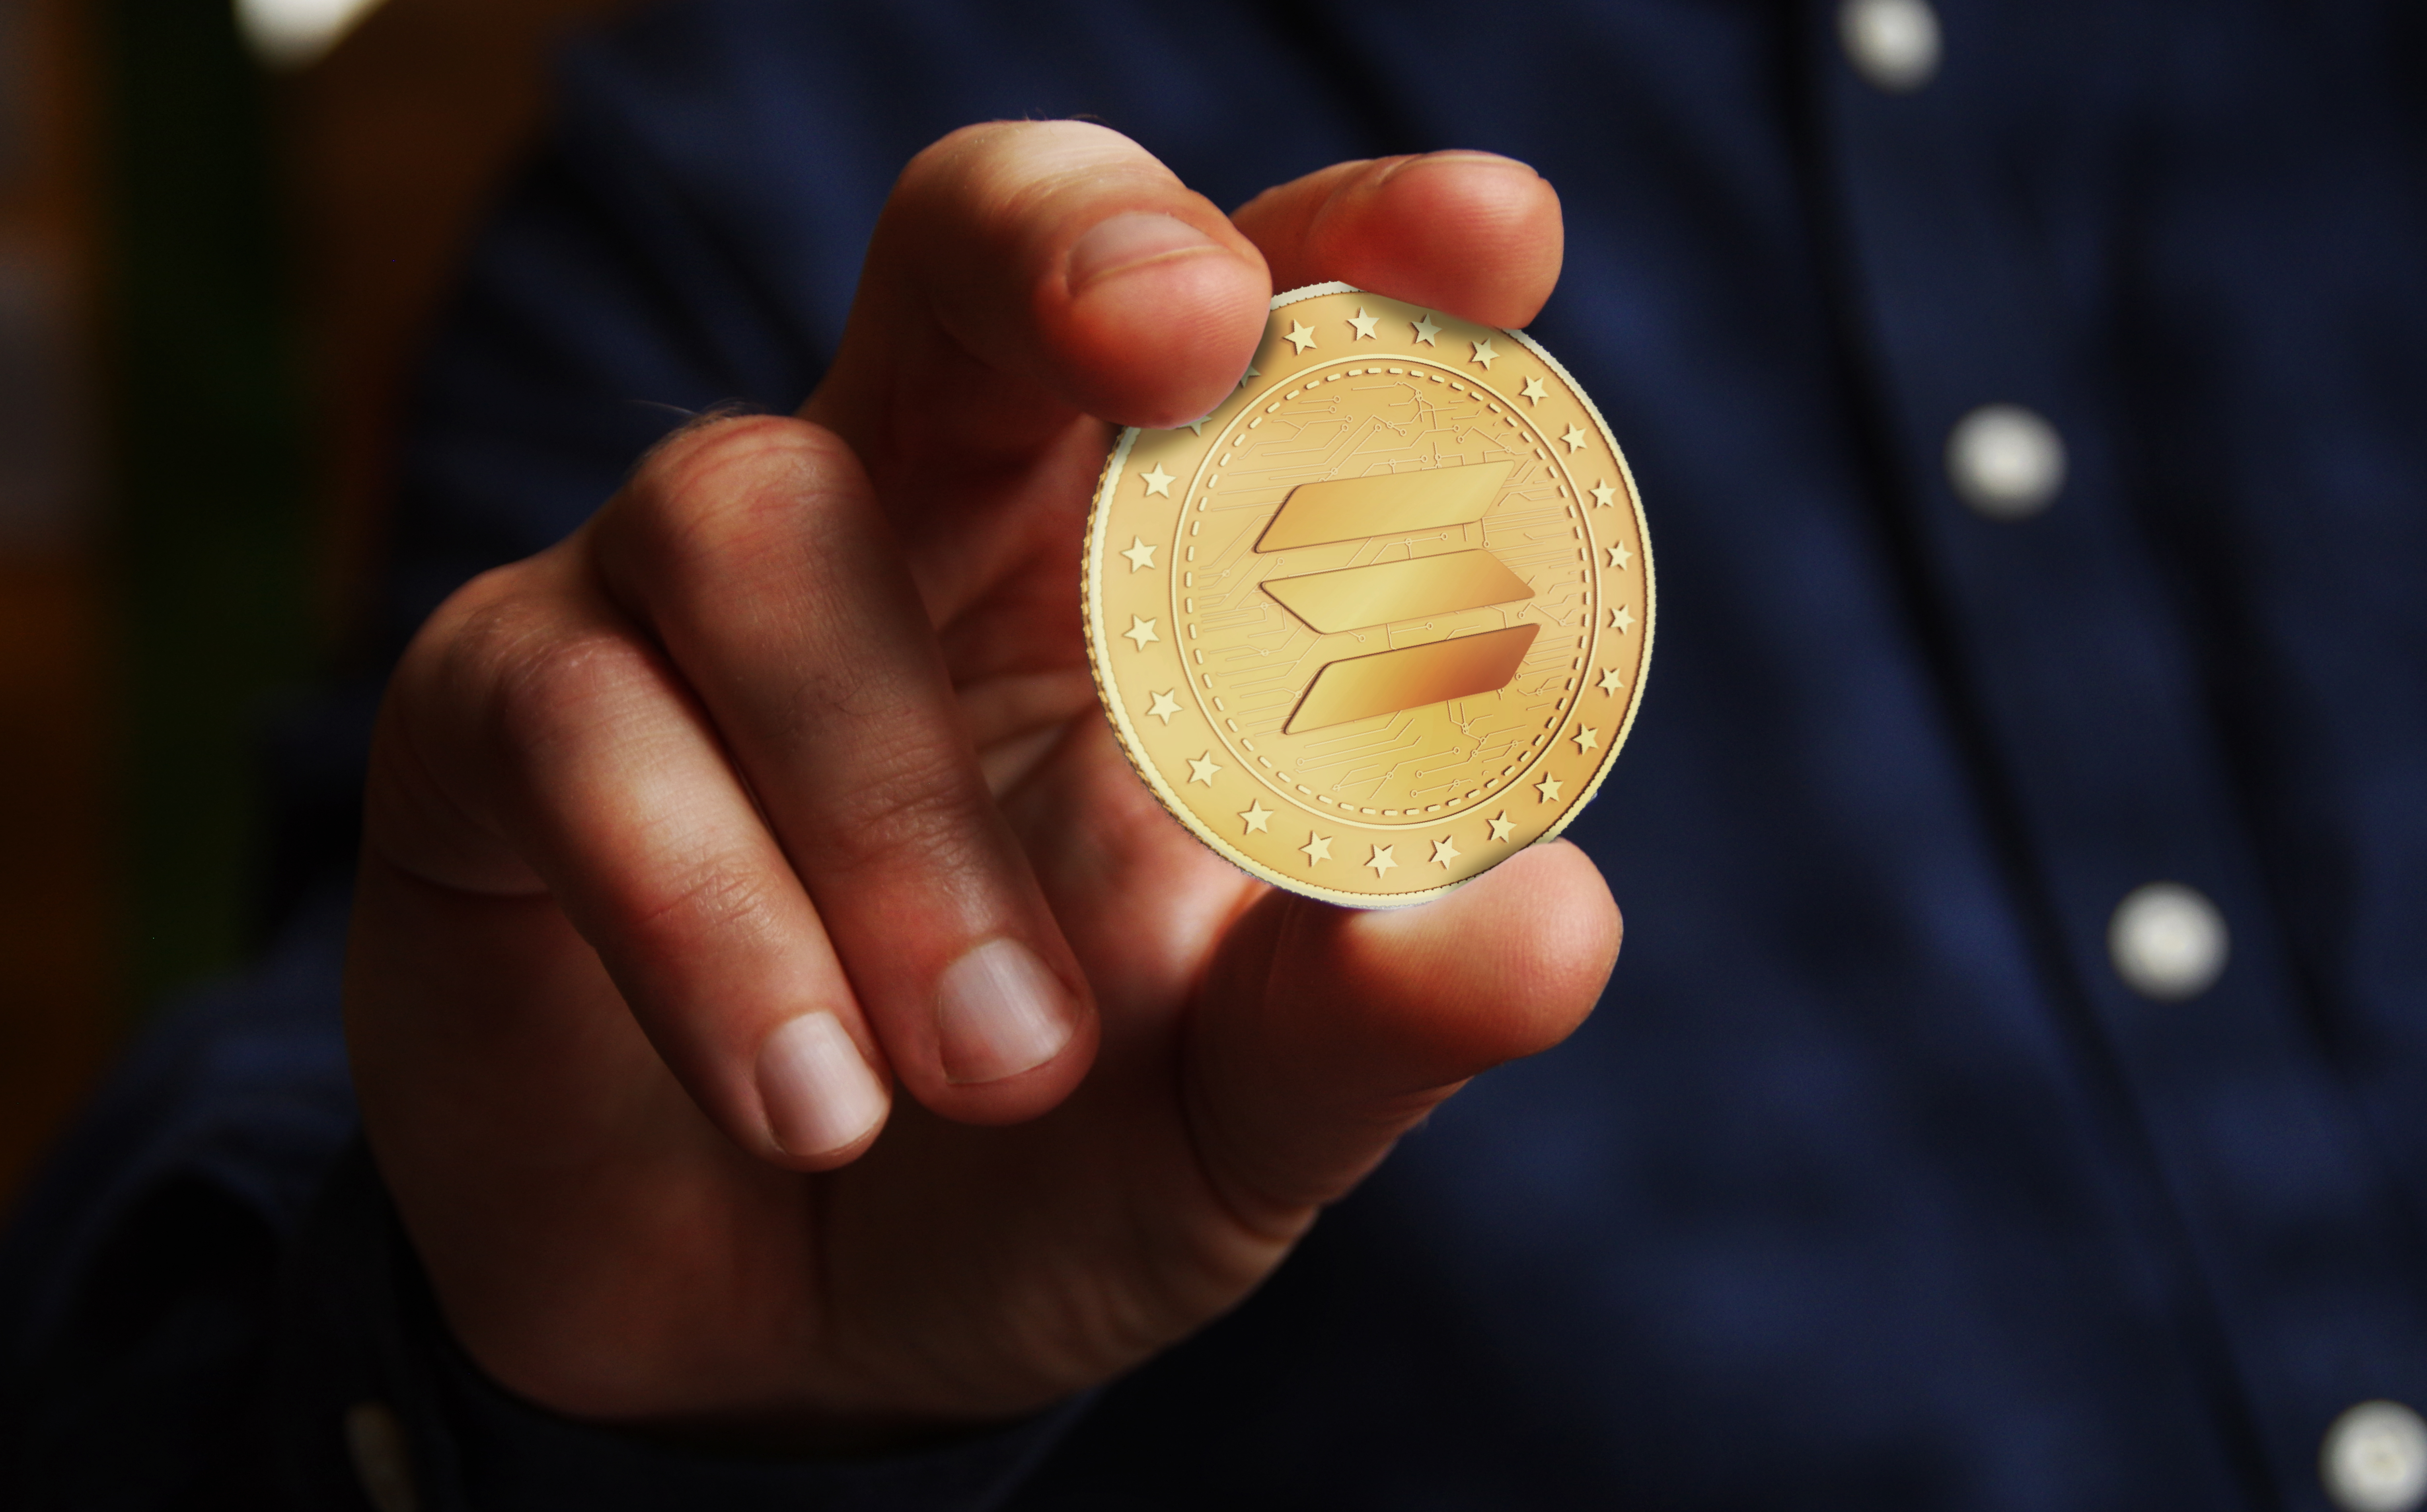 A SOL coin being held forward